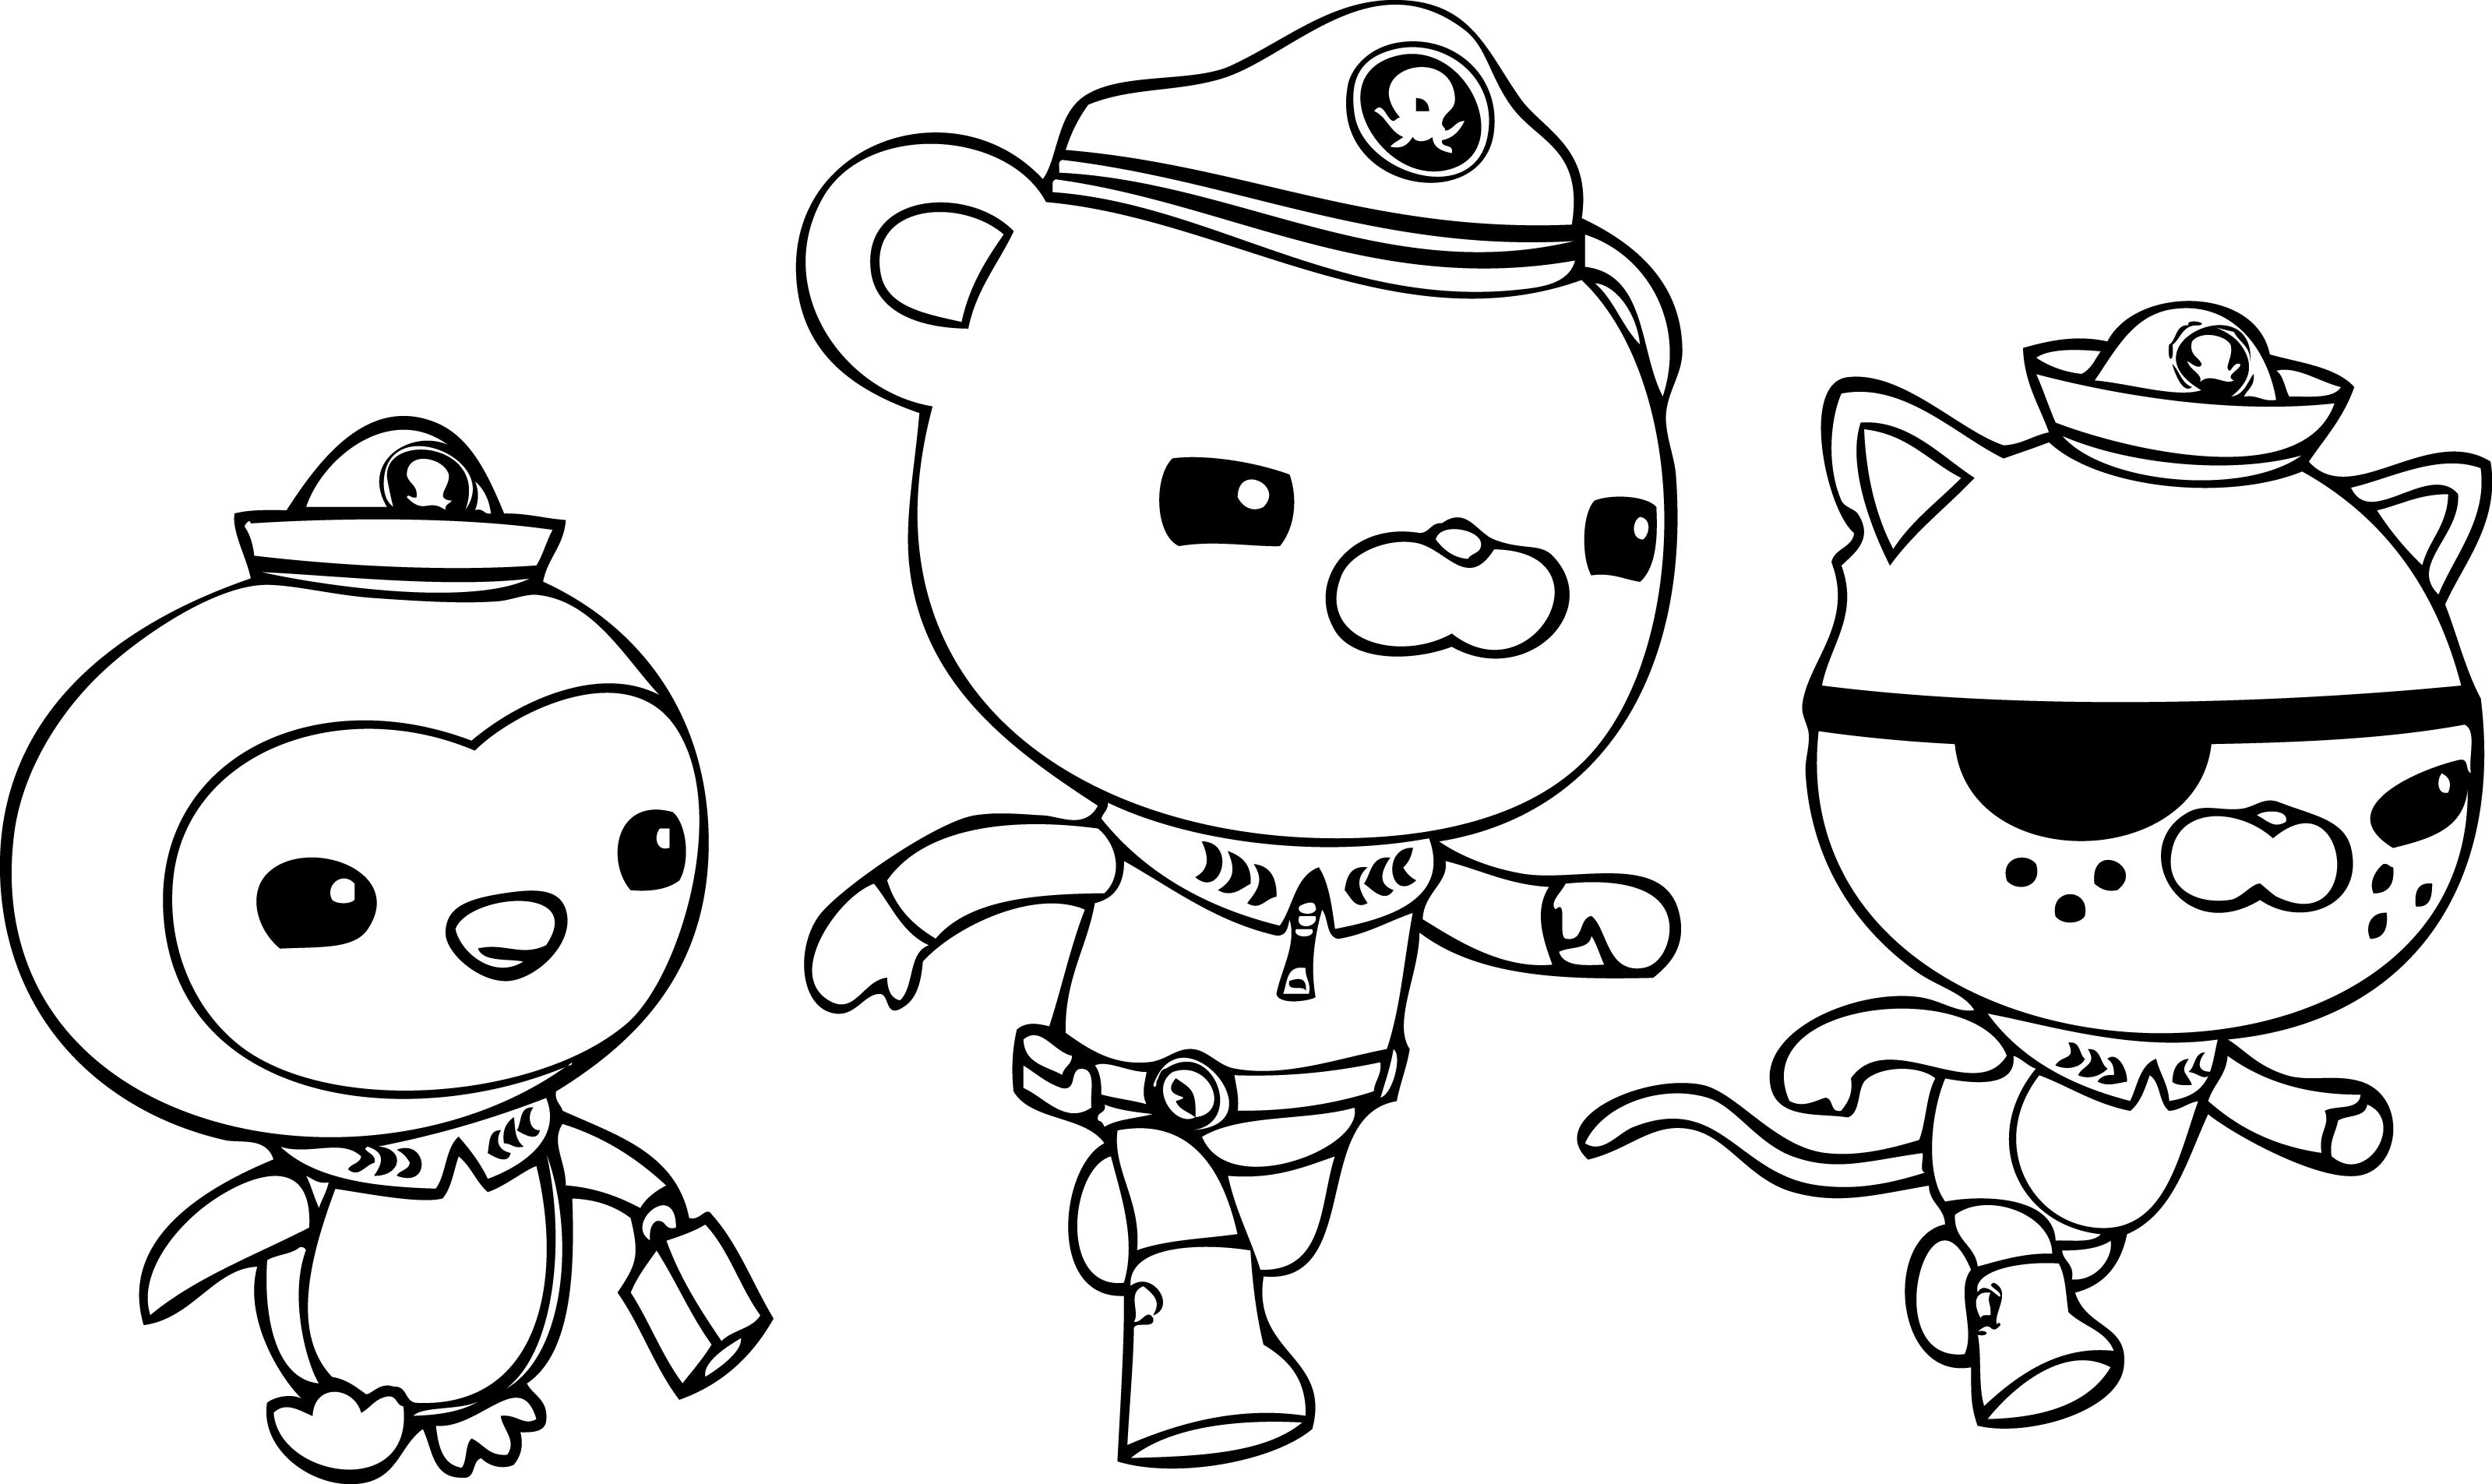 Octonauts Coloring Pages - Best Coloring Pages For Kids